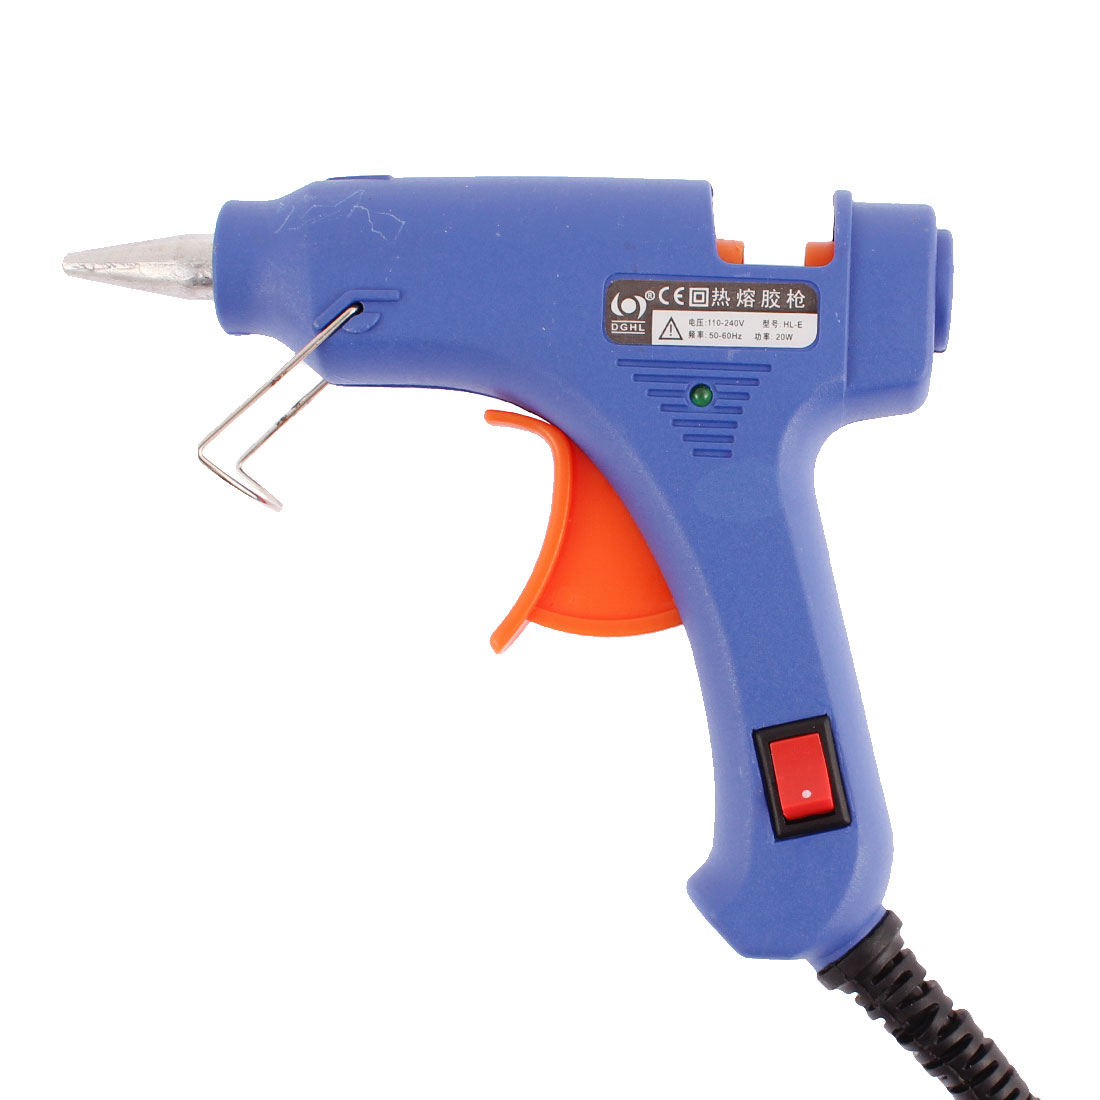 HL-E US Plug 110-240V 50-60Hz 20W Power Electric Heating Hot Melt Glue Gun